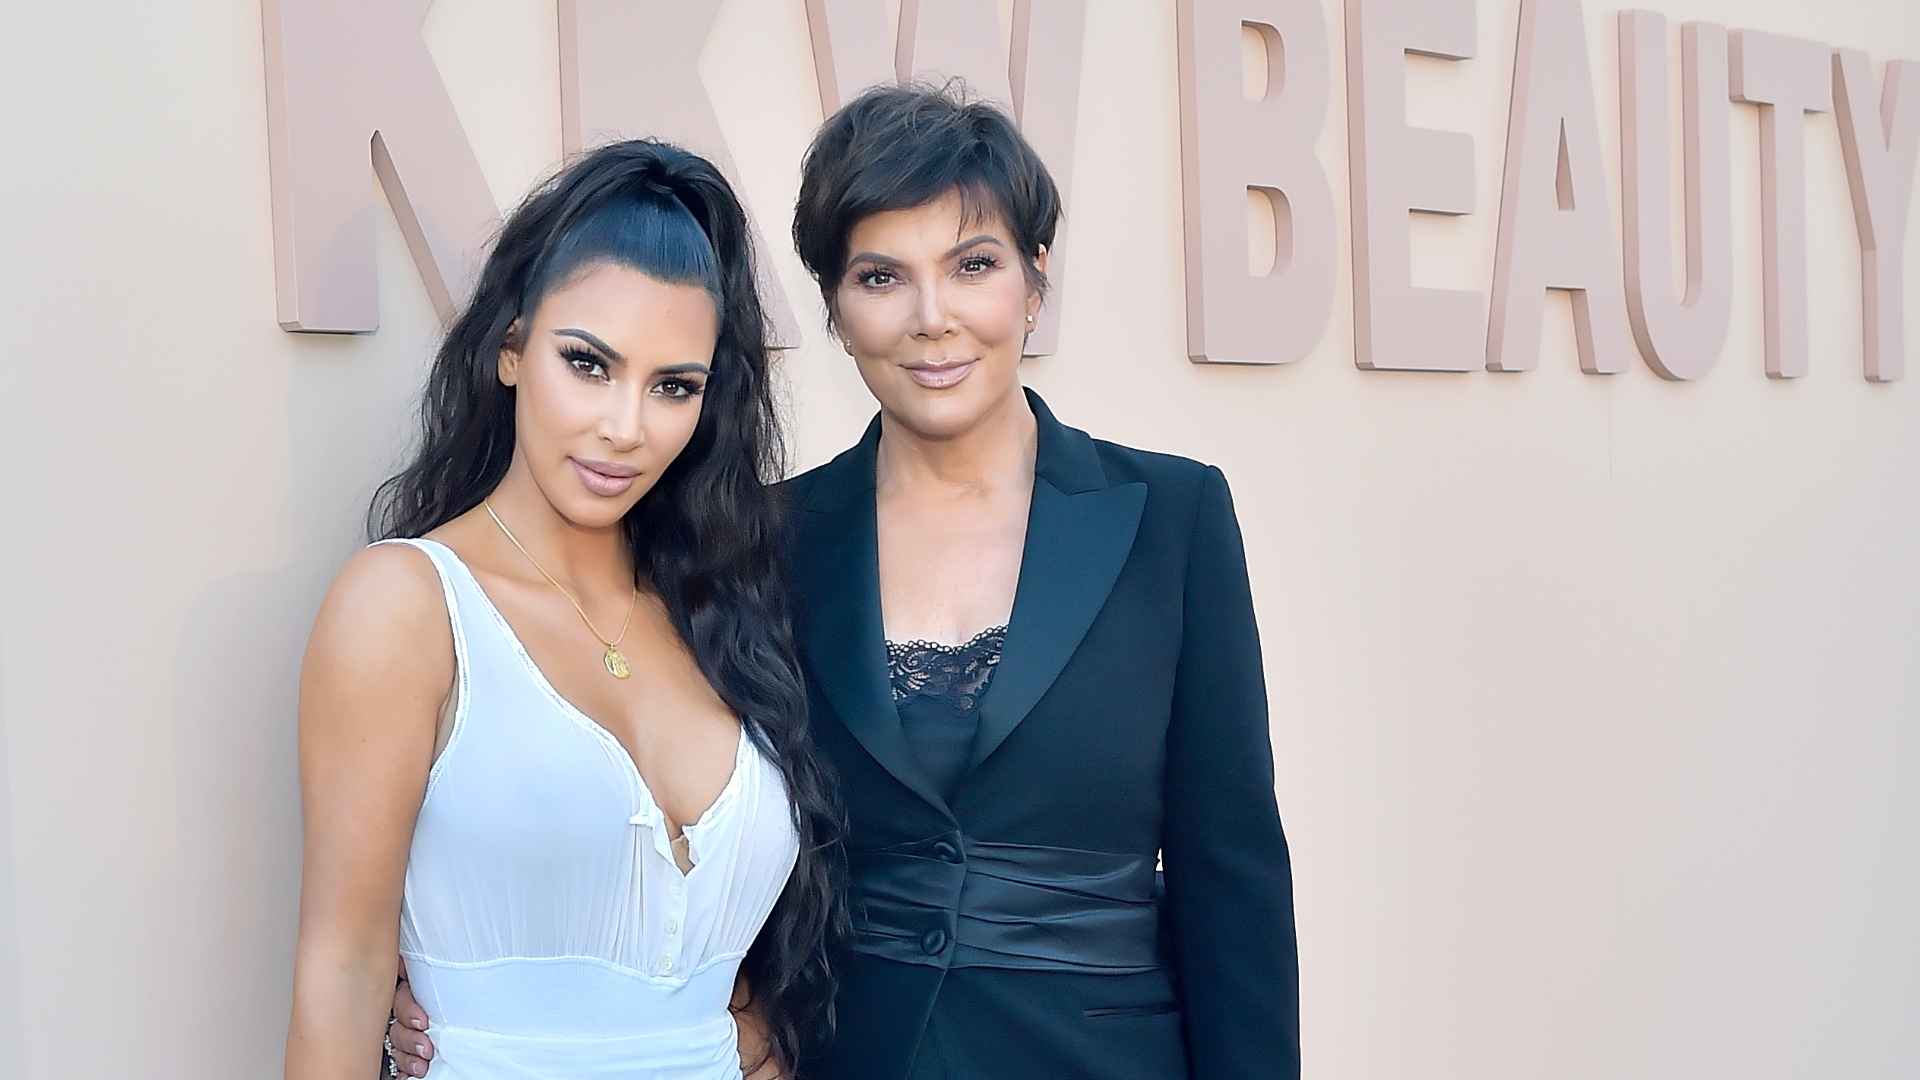 Kim Kardashian Is the First Sister to React to Kylie Jenner's $600 Million Kylie Cosmetics Sale